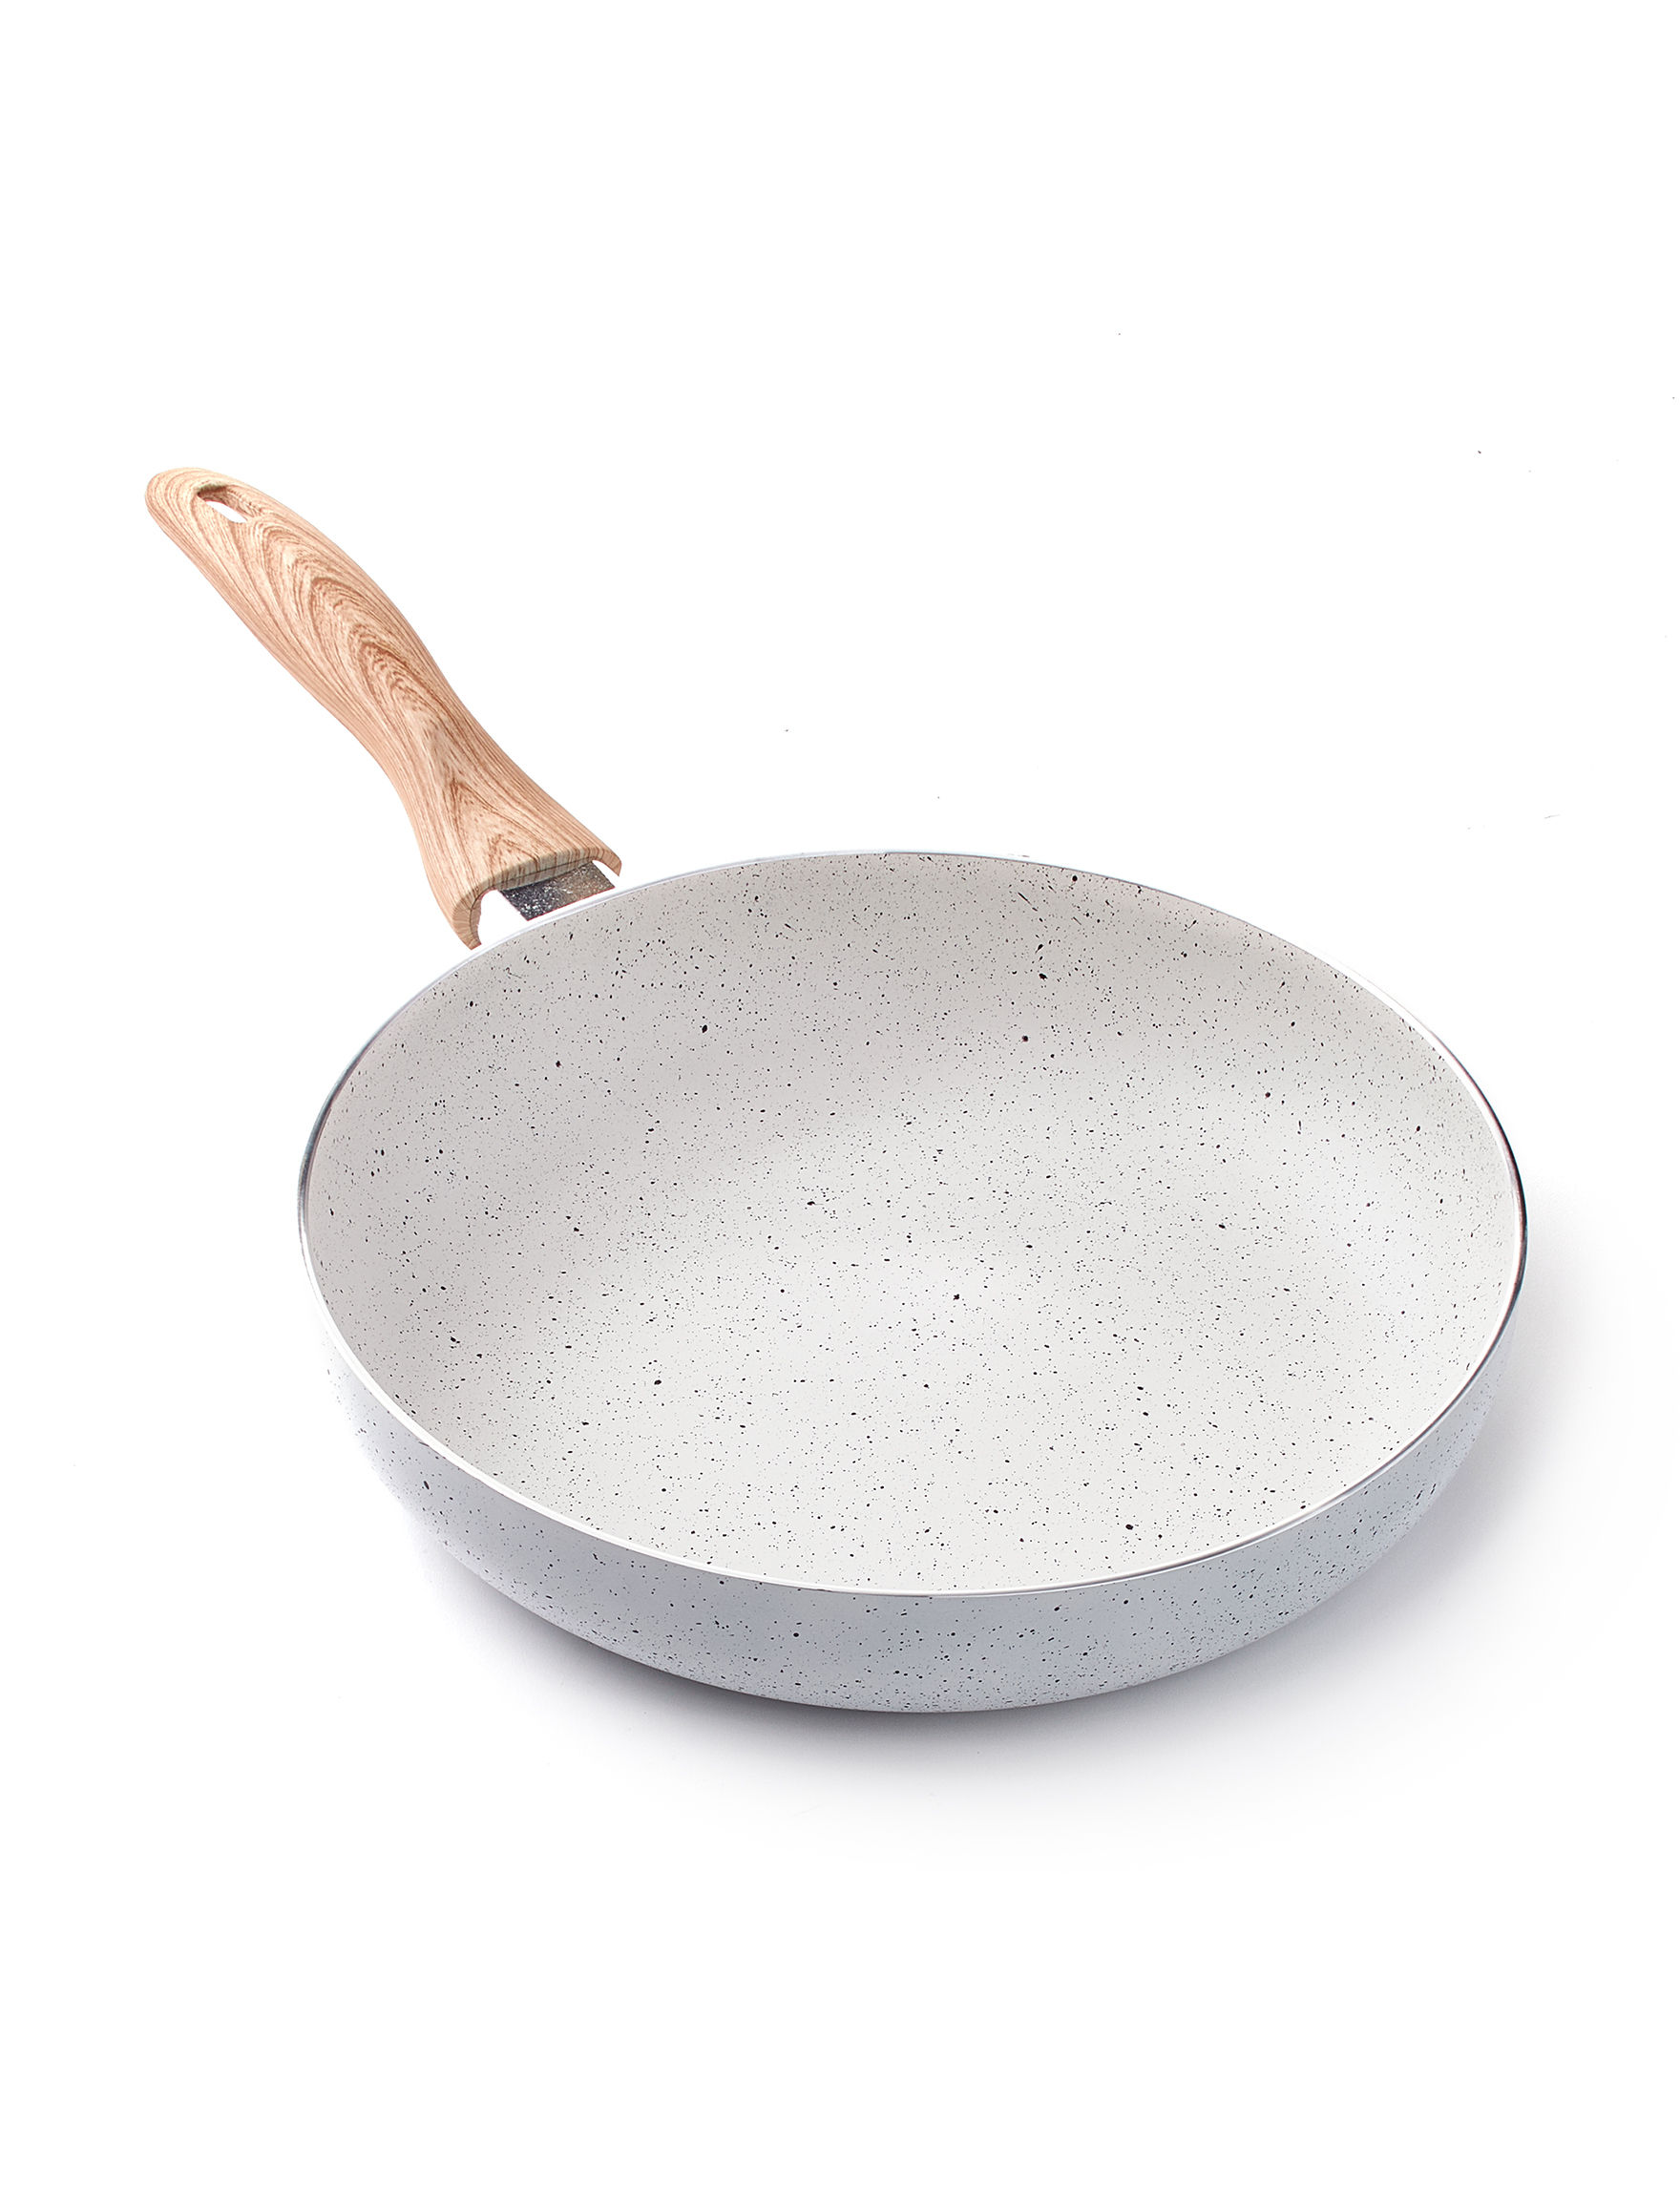 Country Kitchen White Frying Pans & Skillets Cookware